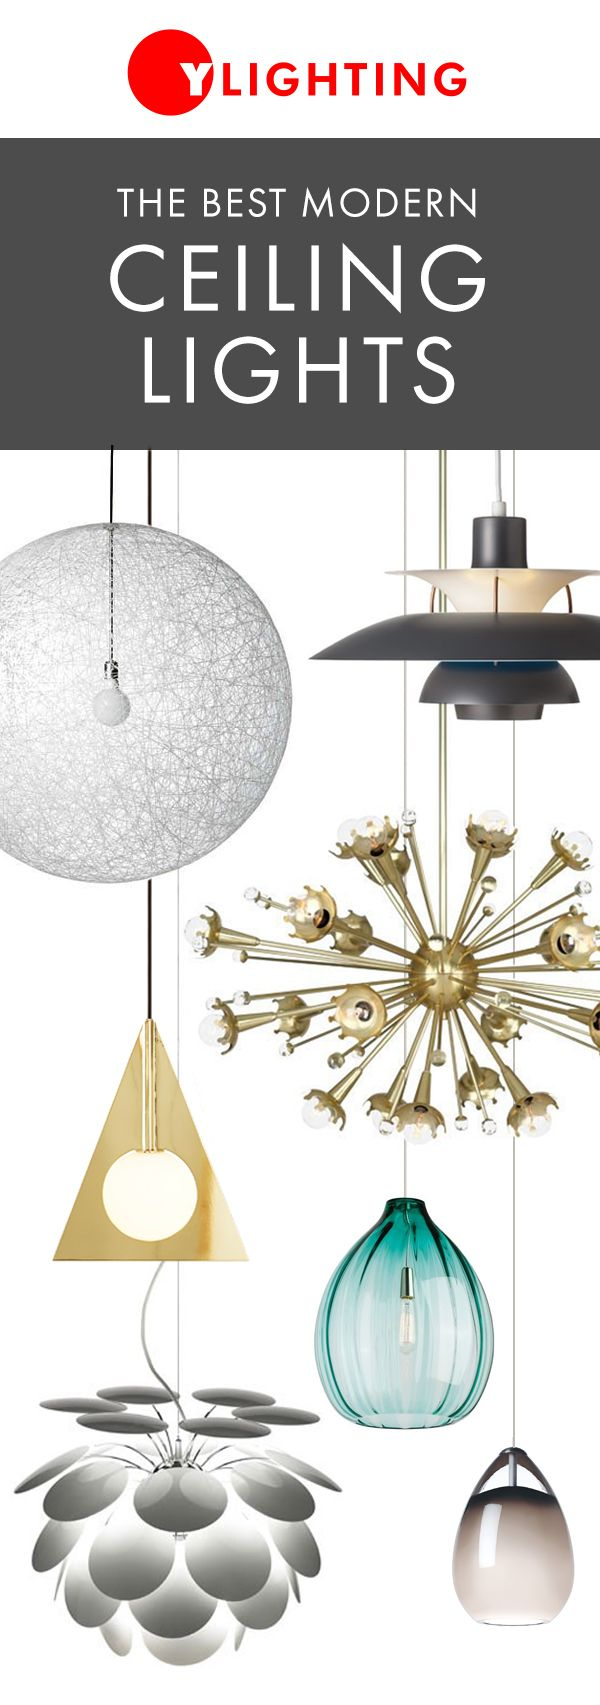 Ylighting offers an extensive selection of modern ceiling lights modern ceiling lights mozeypictures Images